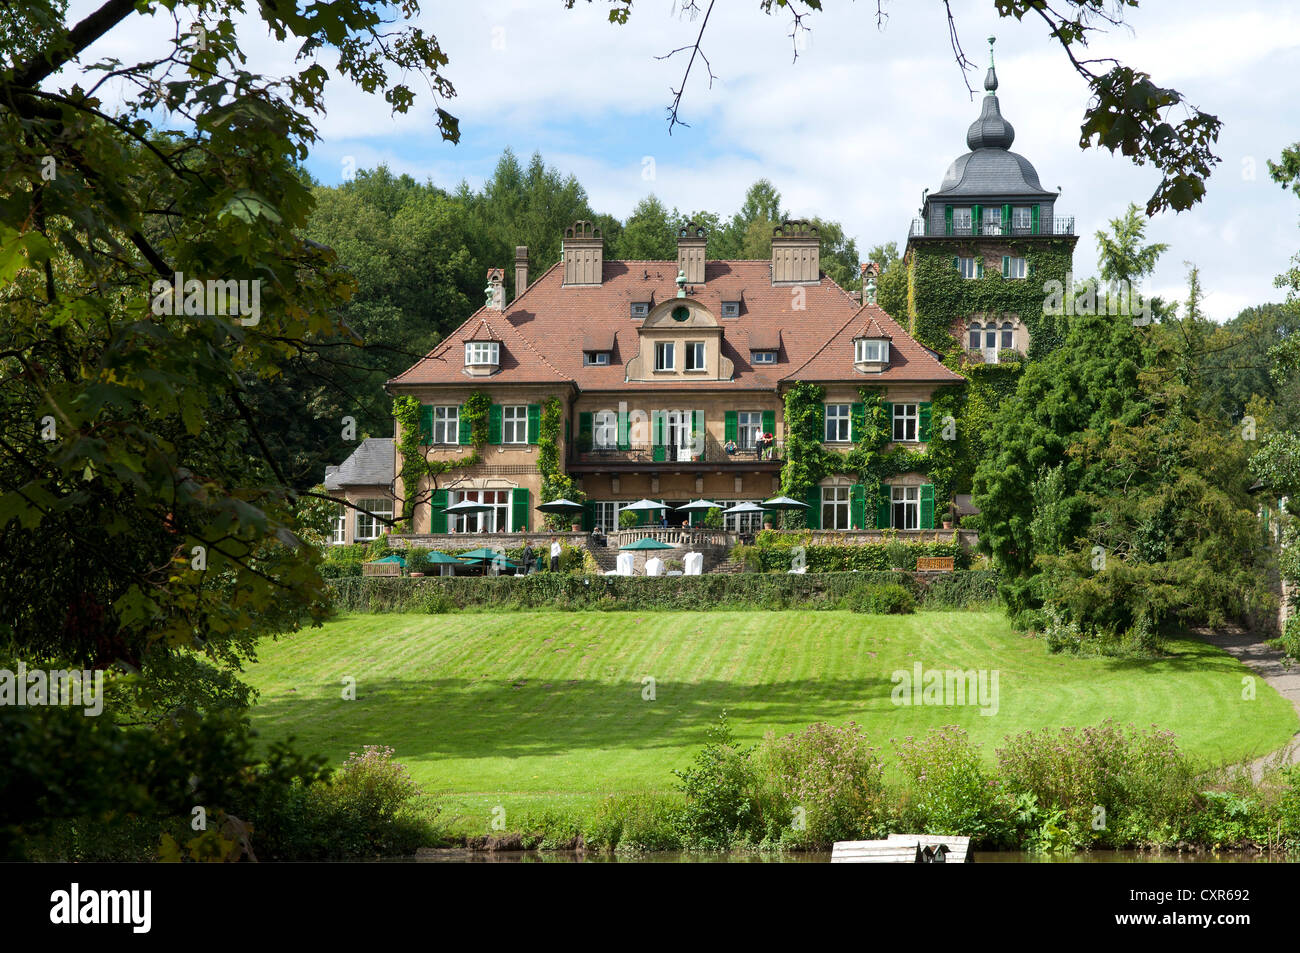 hotel of schloss lerbach castle bergisch gladbach north stock photo royalty free image. Black Bedroom Furniture Sets. Home Design Ideas